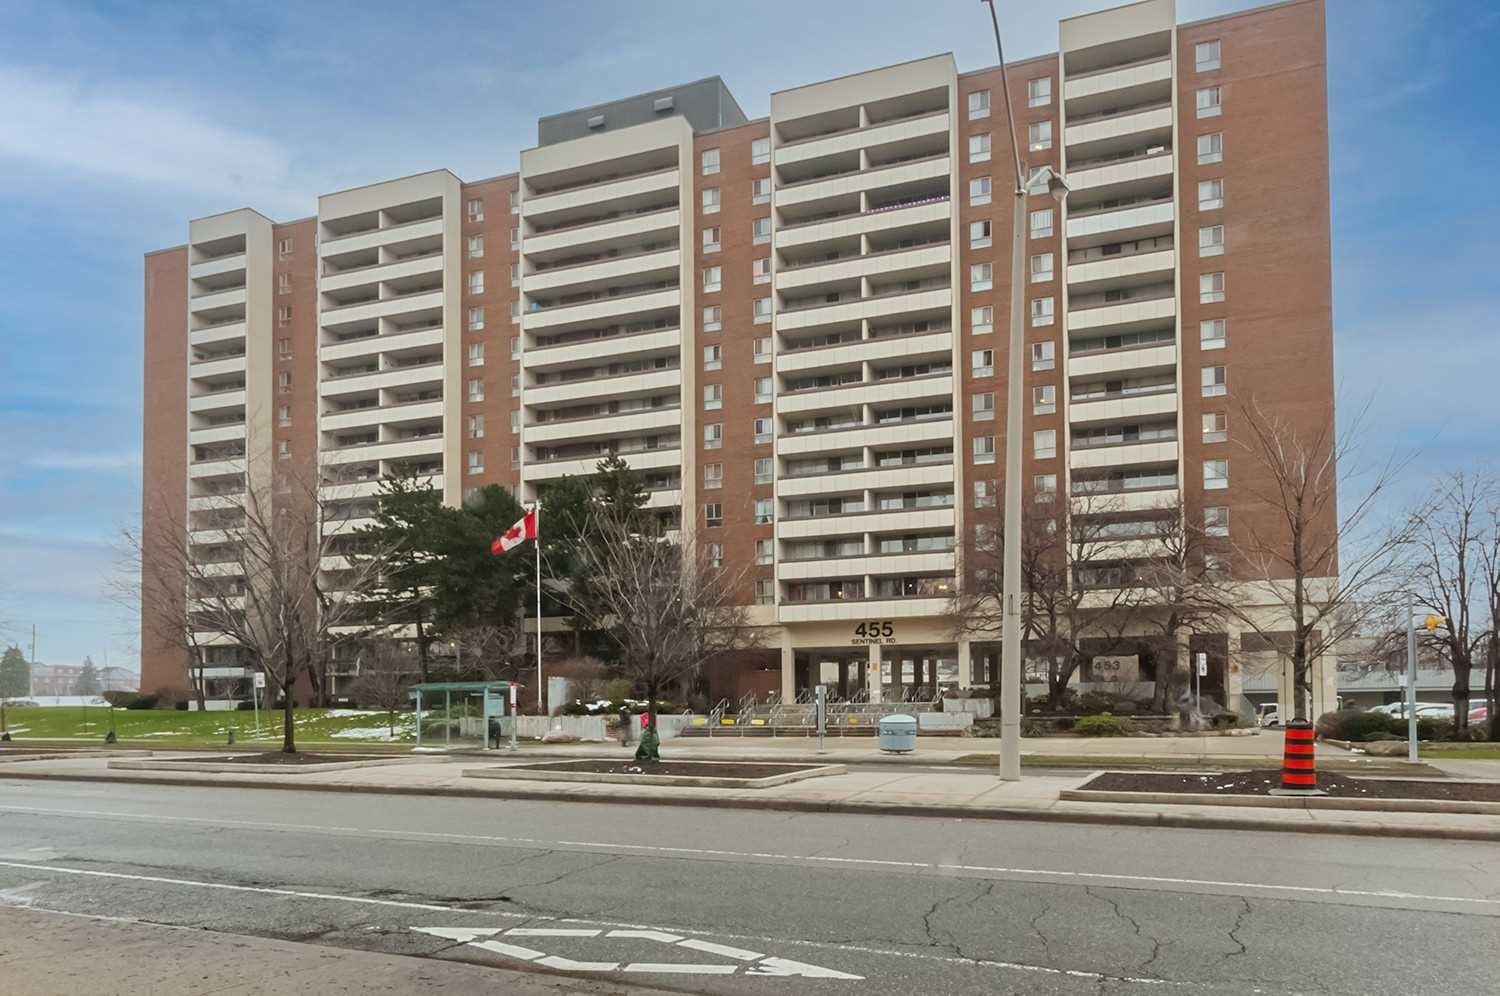 For Sale: 902 - 455 Sentinel Road, Toronto, ON | 2 Bed, 1 Bath Condo for $439900.00. See 33 photos!